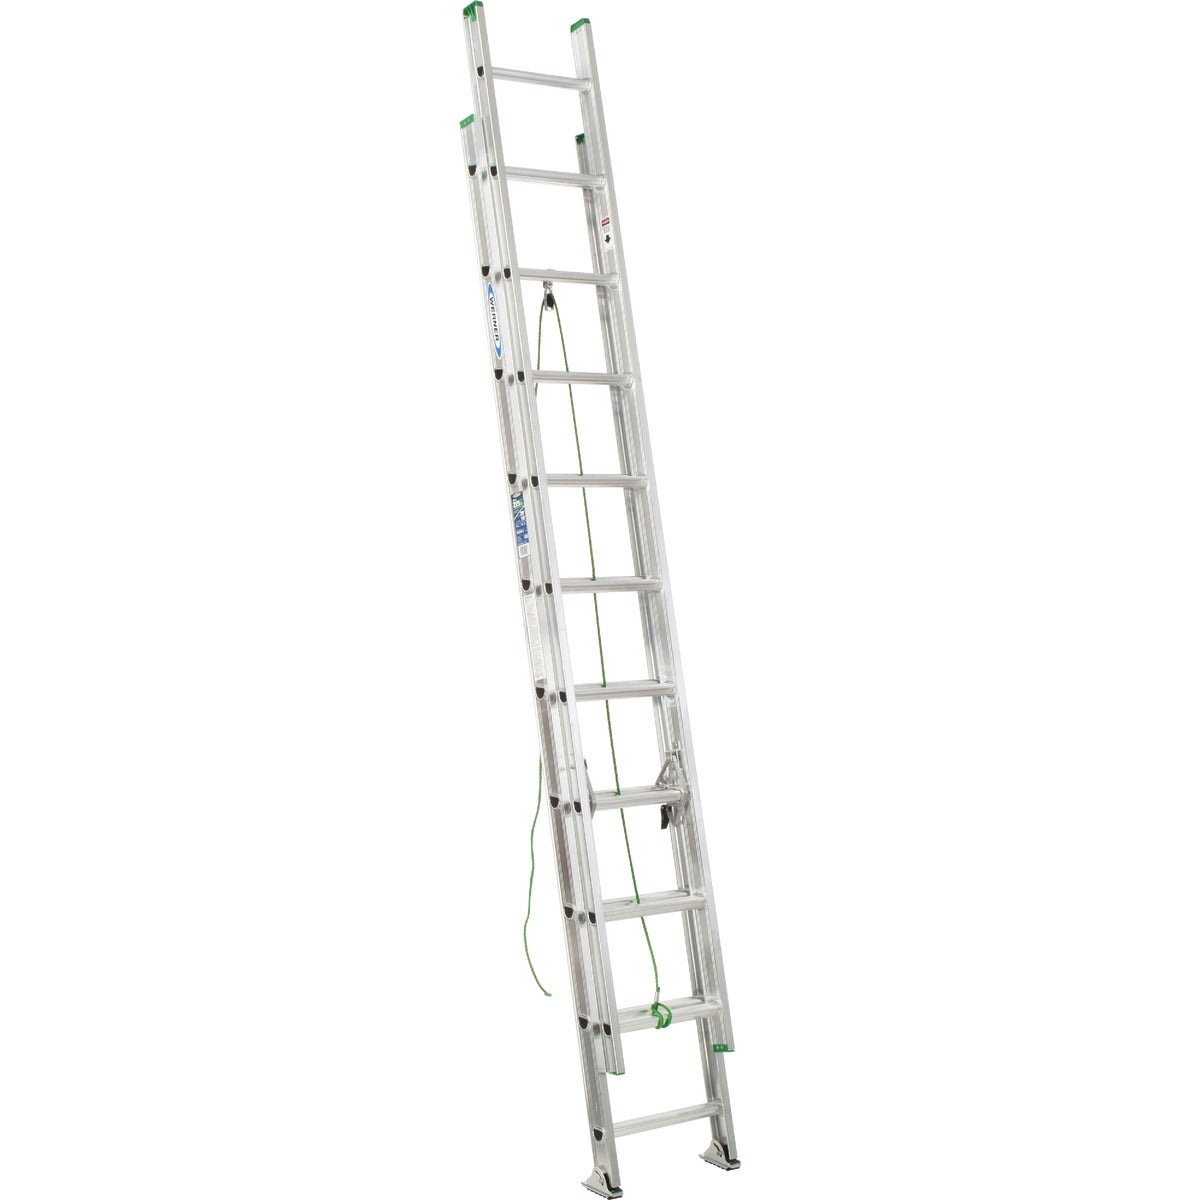 T-2 20' ALUM EXT LADDER - D1220-2 by Werner Ladder